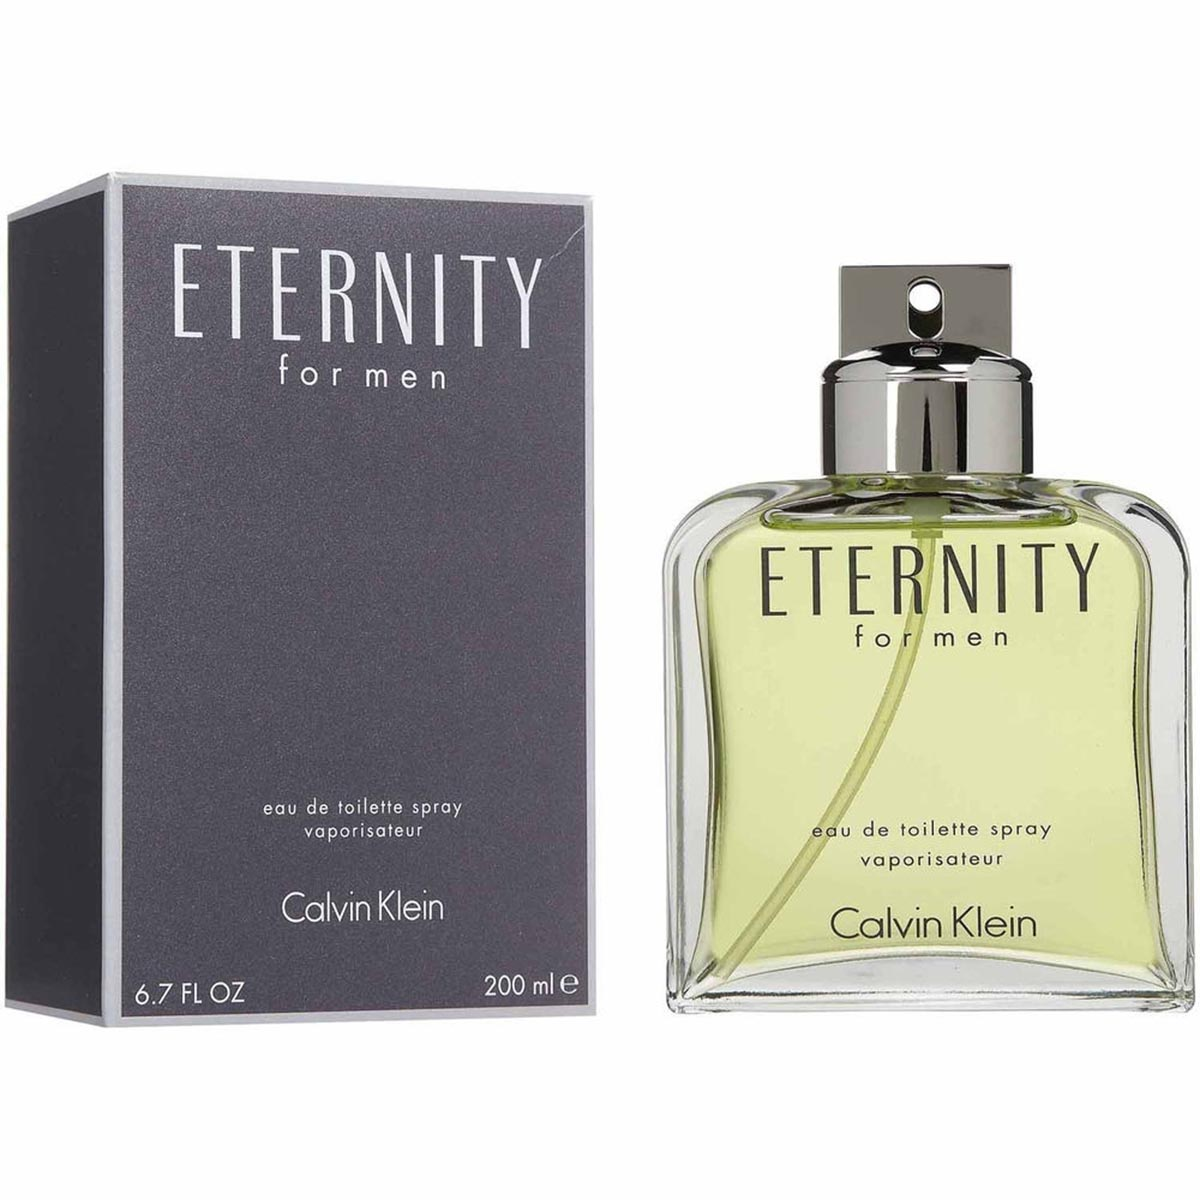 Calvin klein eternity men eau de toilette 200ml vaporizador